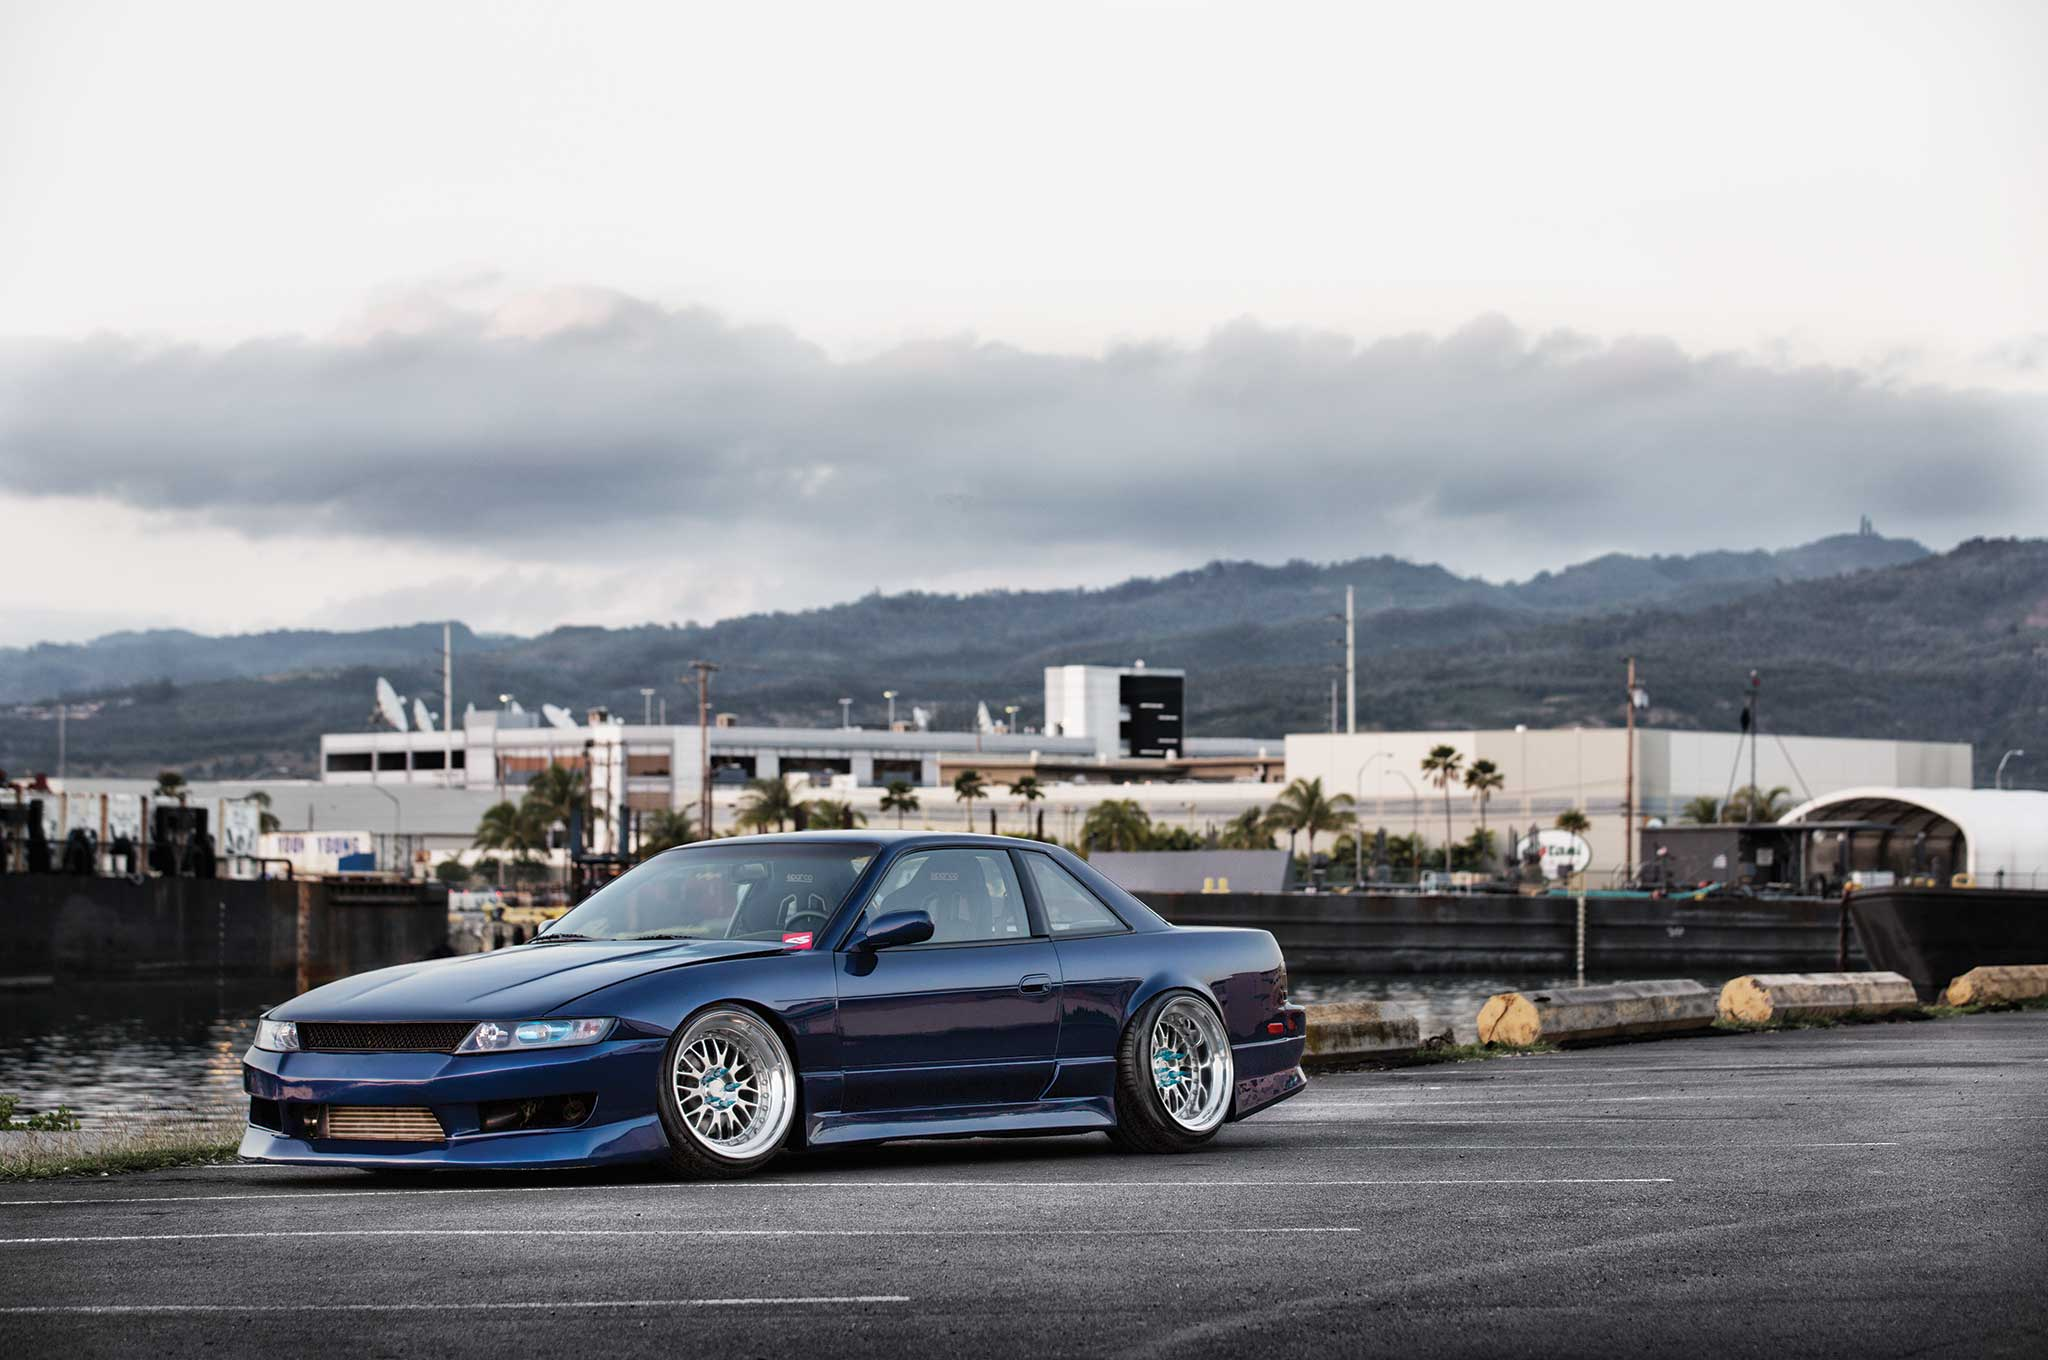 Turbocharged Nissan 240sx With Odyvia Front End From Hawaii